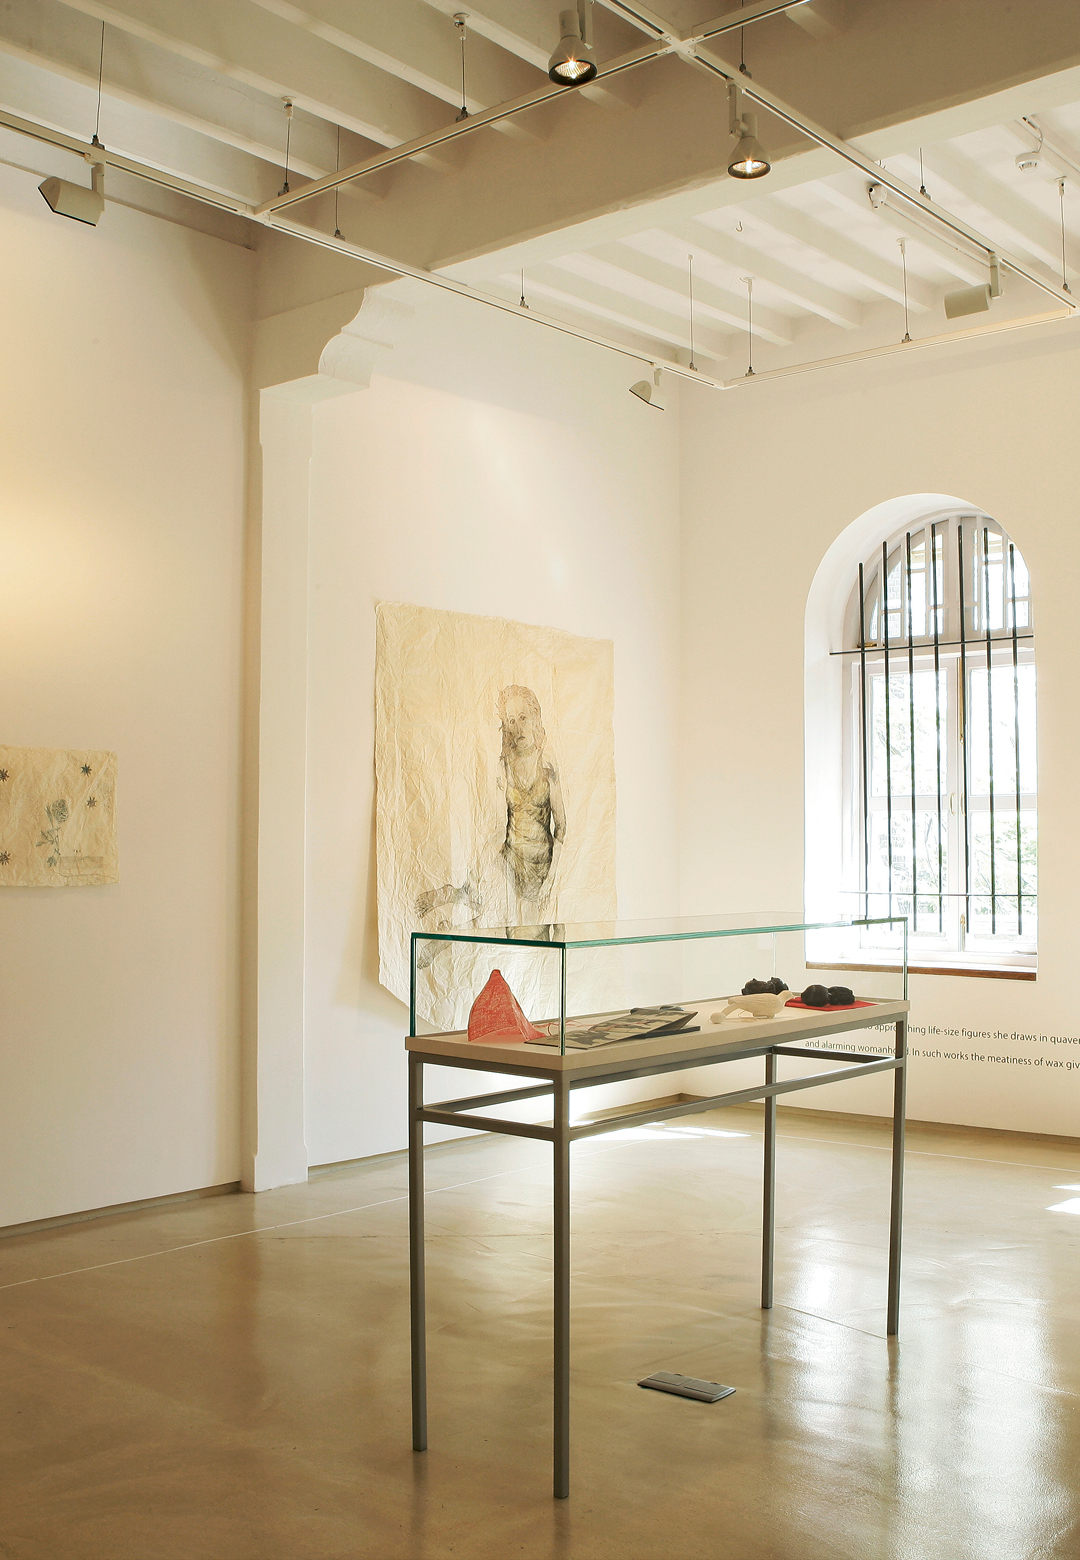 Kiki Smith, installation view at Galerie Mirchandani + Steinruecke | Kiki Smith | Galerie Mirchandani + Steinruecke | STIRworld